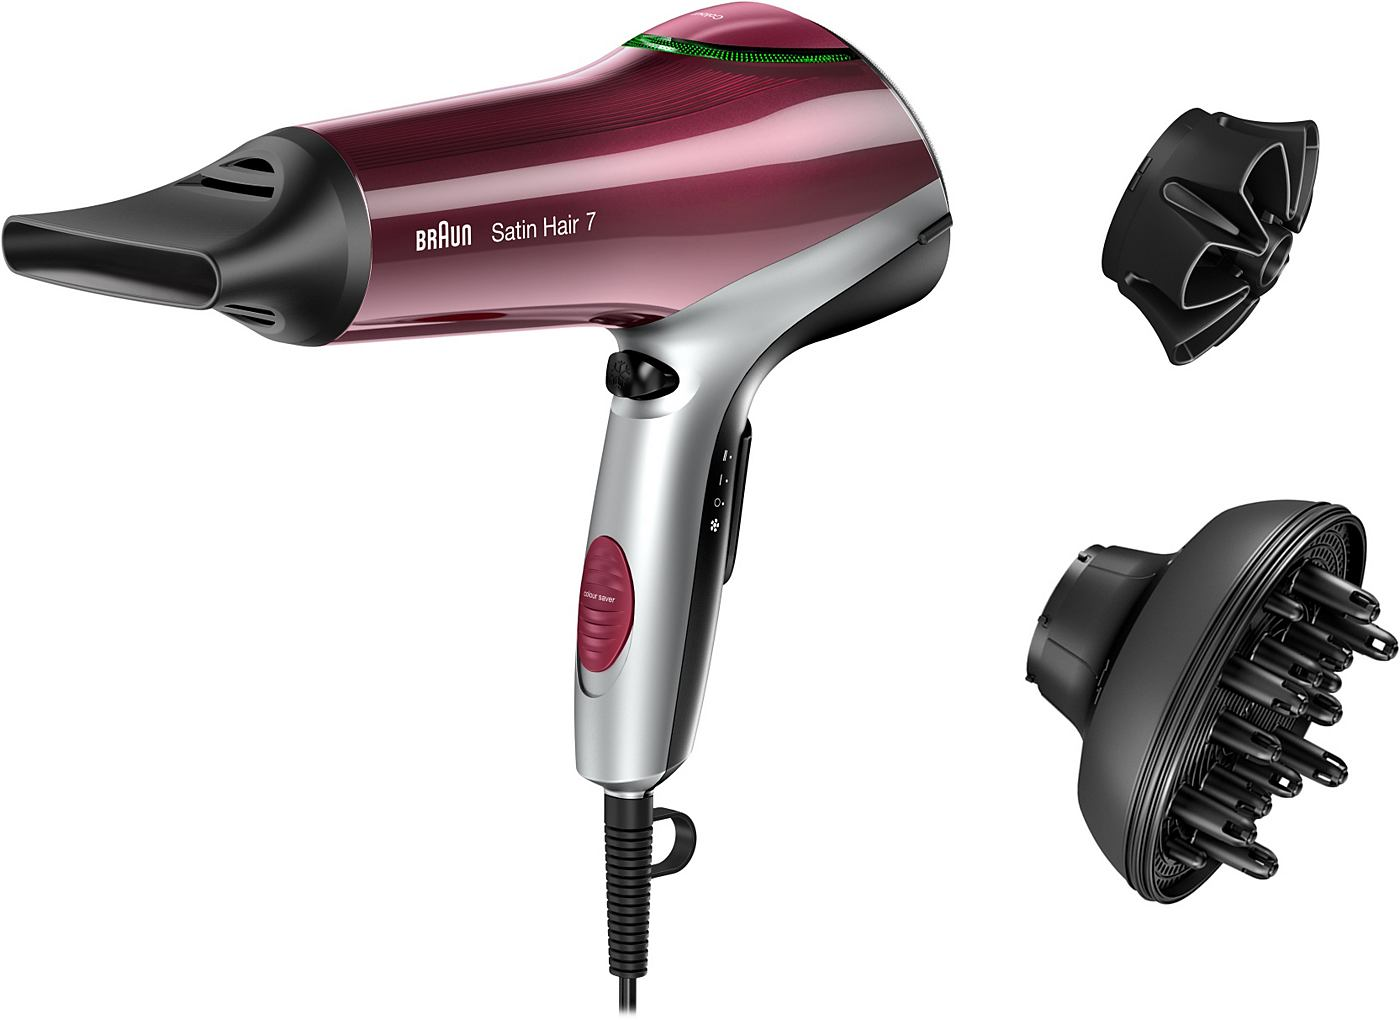 BRAUN Haardroger Satin Hair 7 HD770